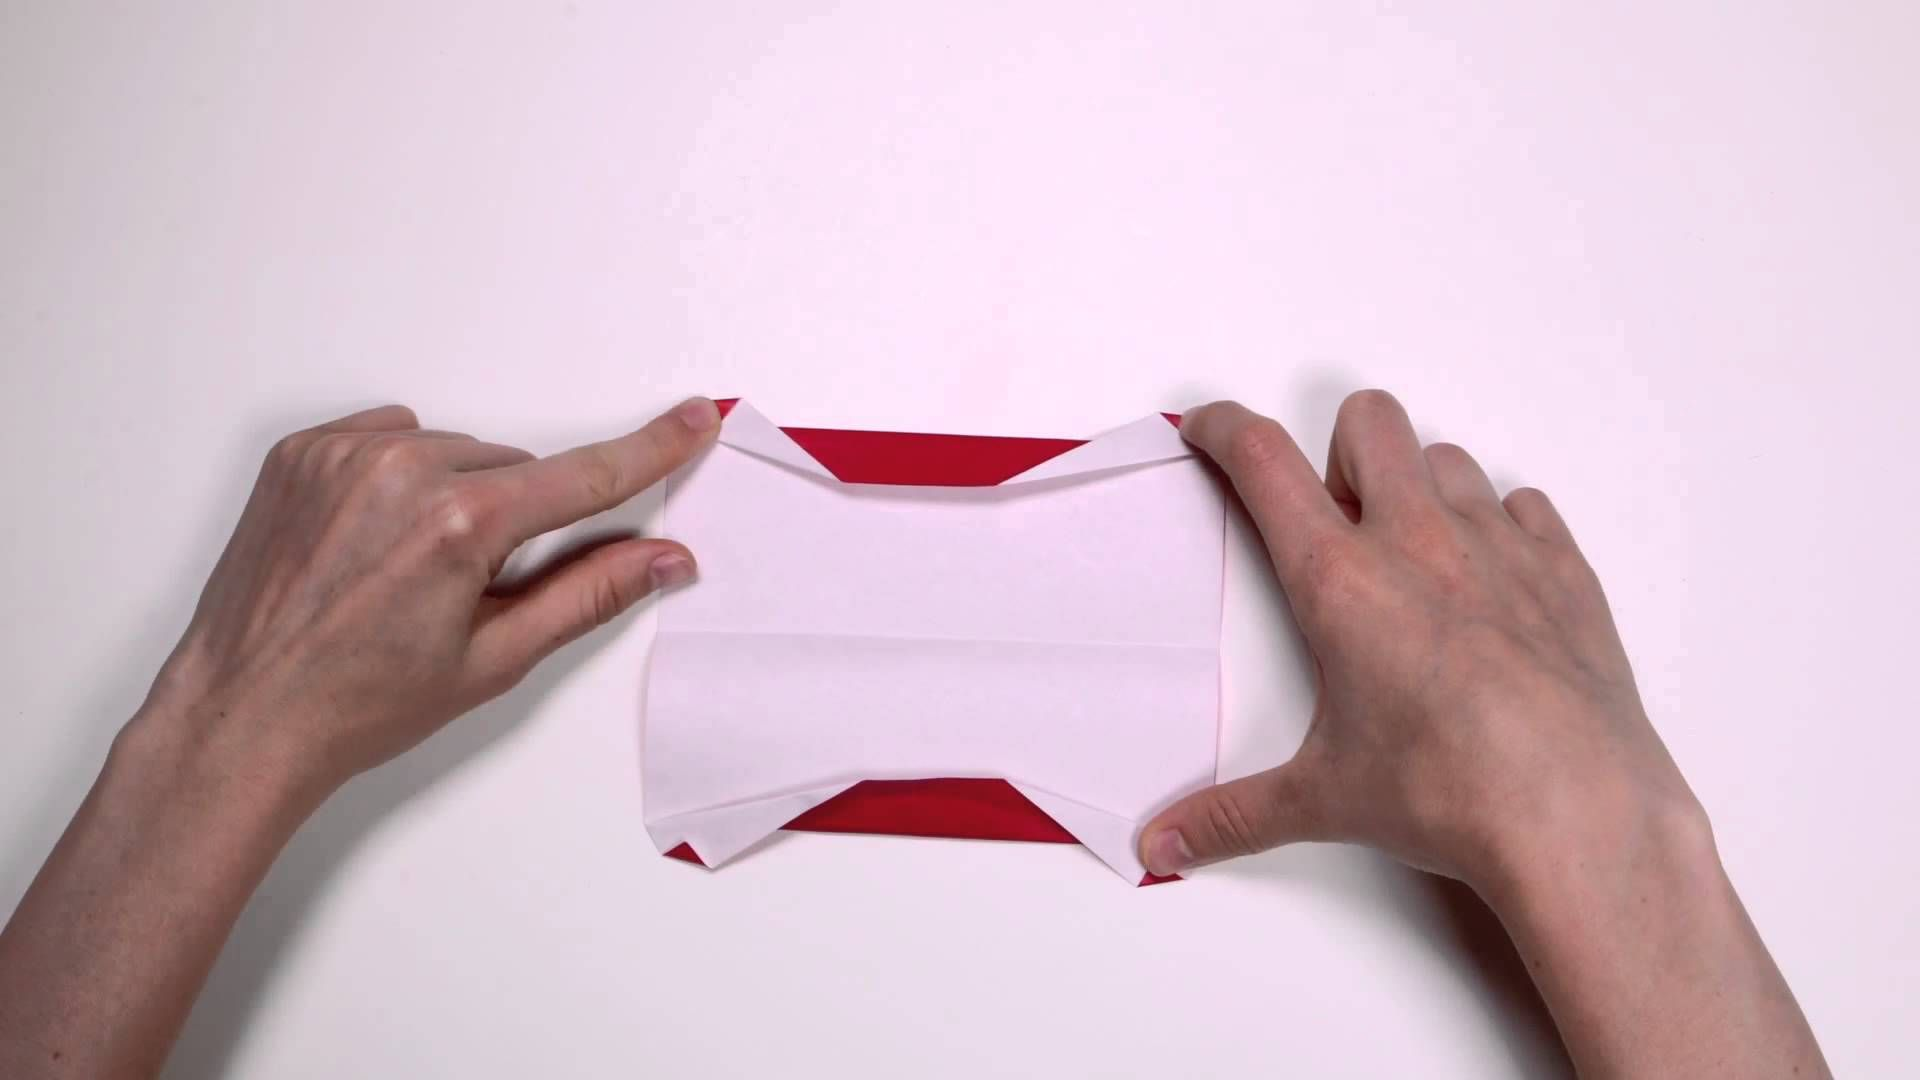 You can make a Honda Car out of Origami paper! Origami